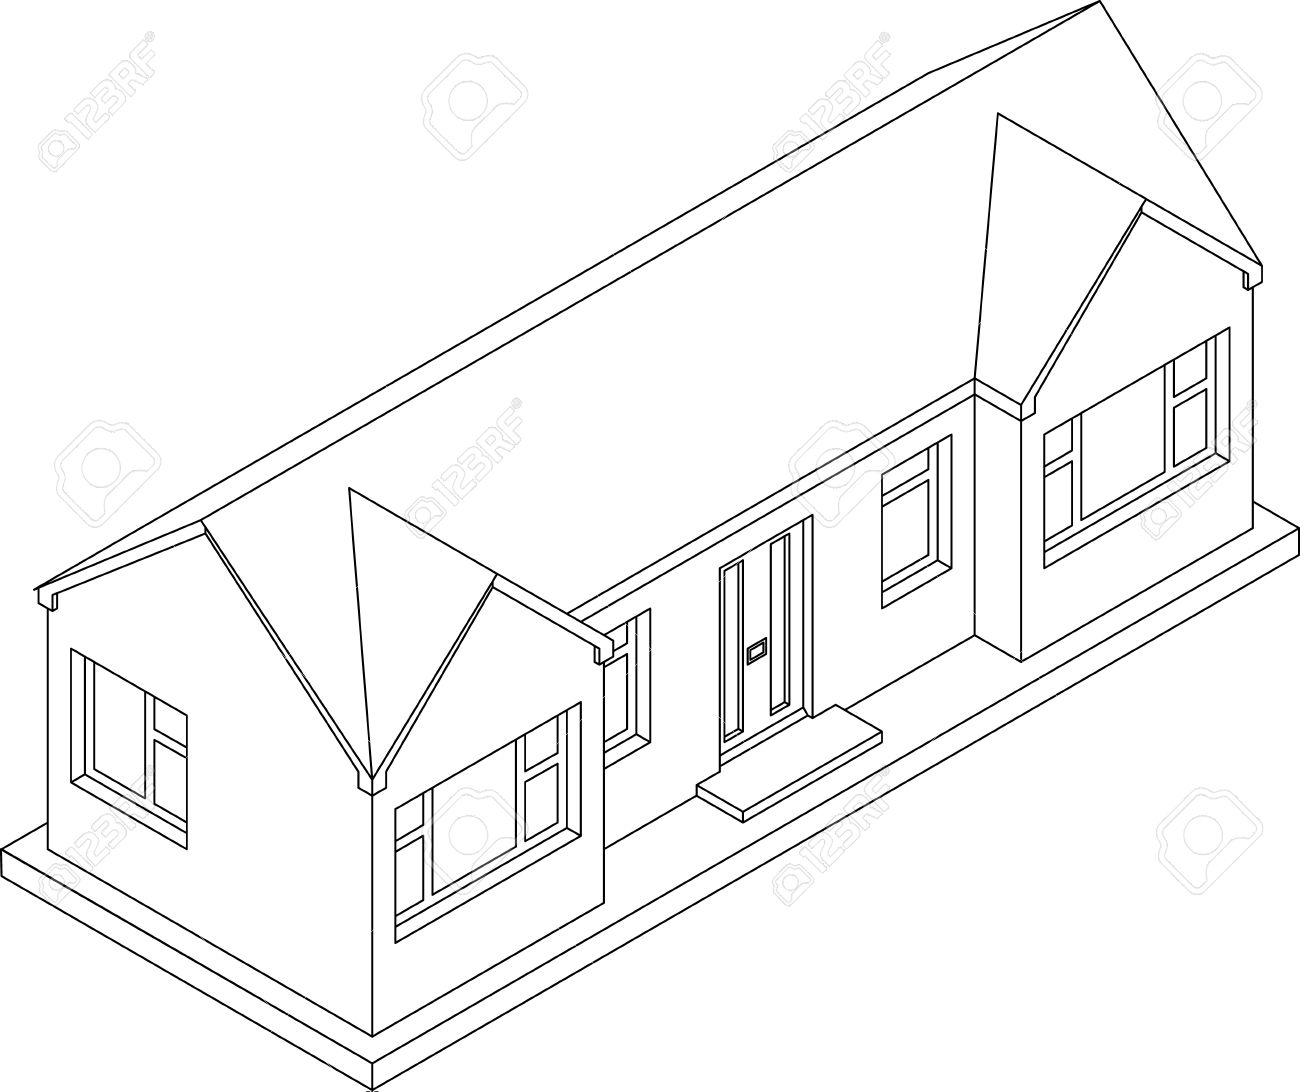 how to get a isometric drawing in sketchup